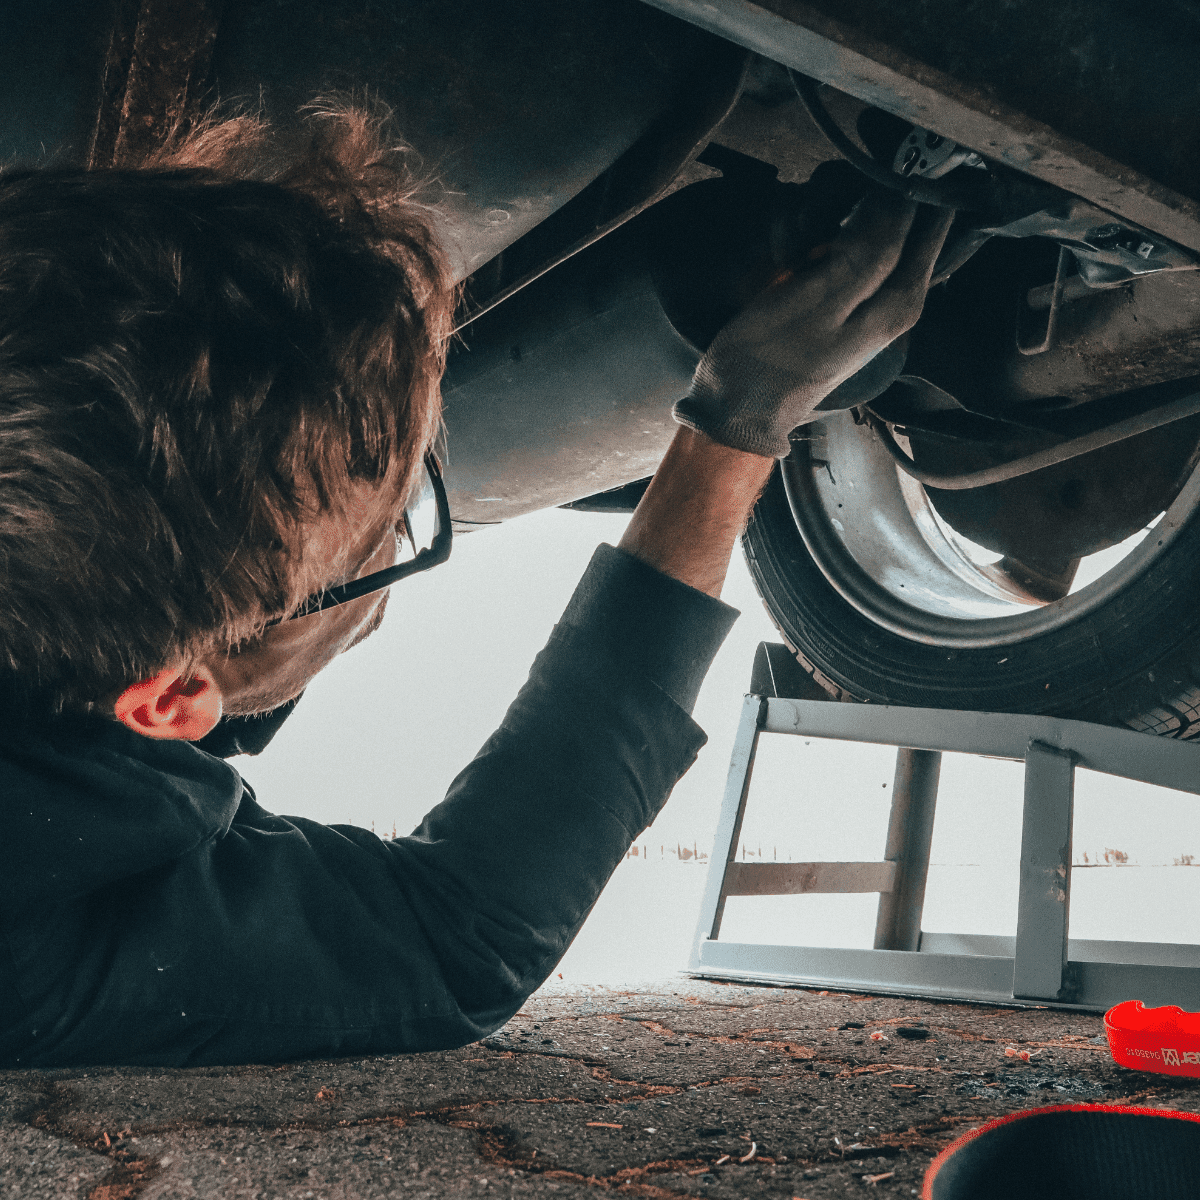 Best Car Repair Loans in Ontario 2021